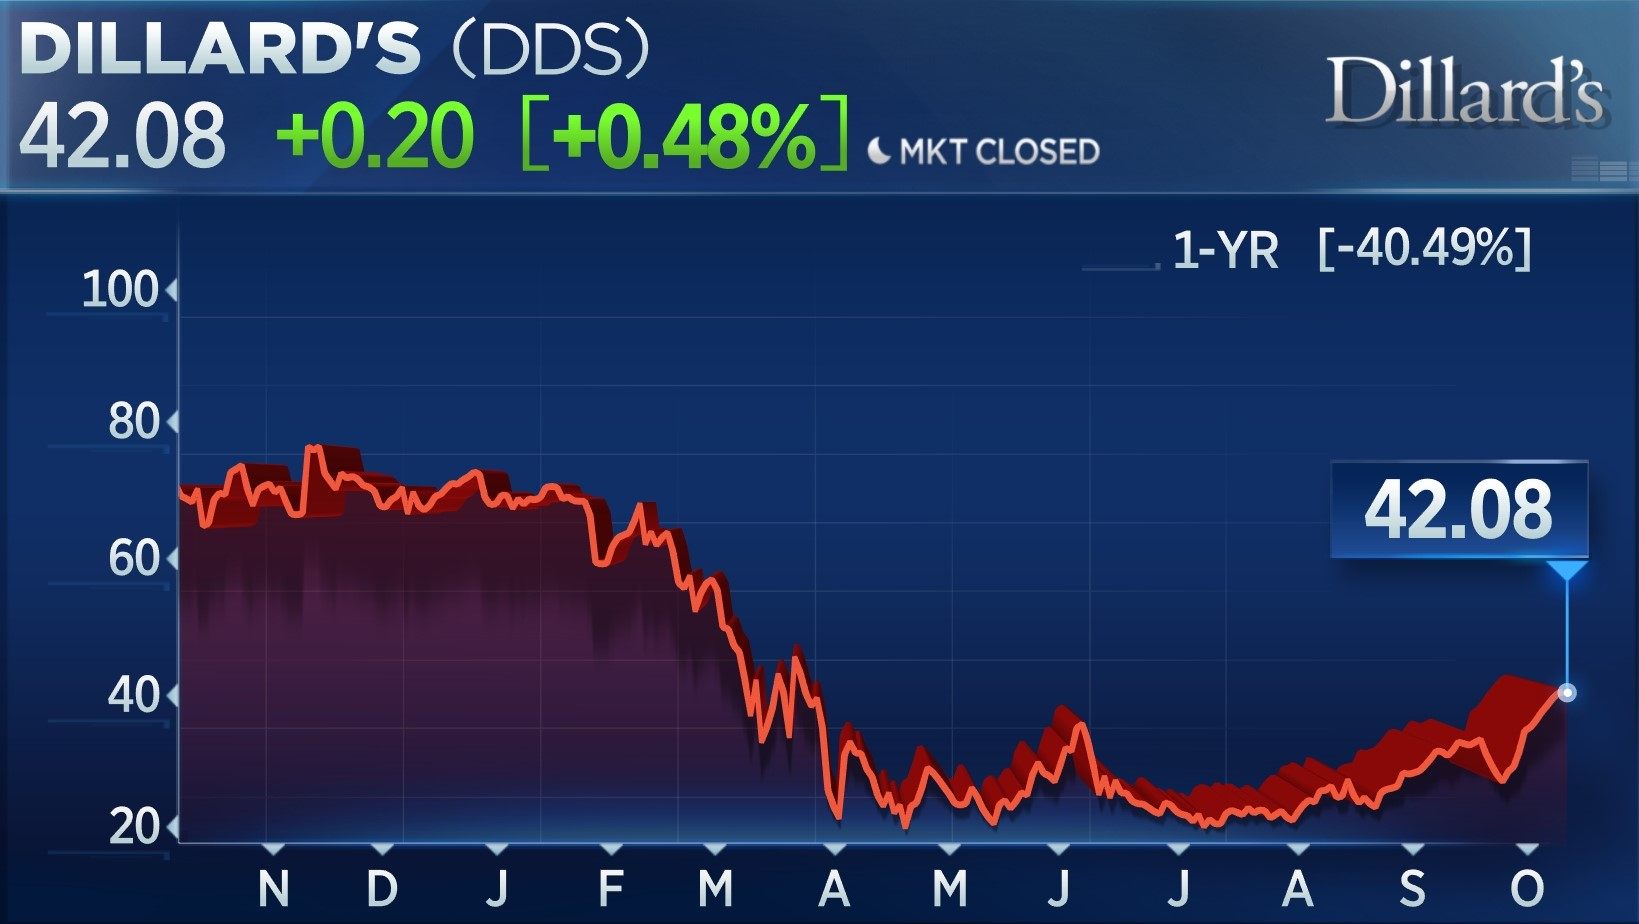 DDS 1 year down 40.49%